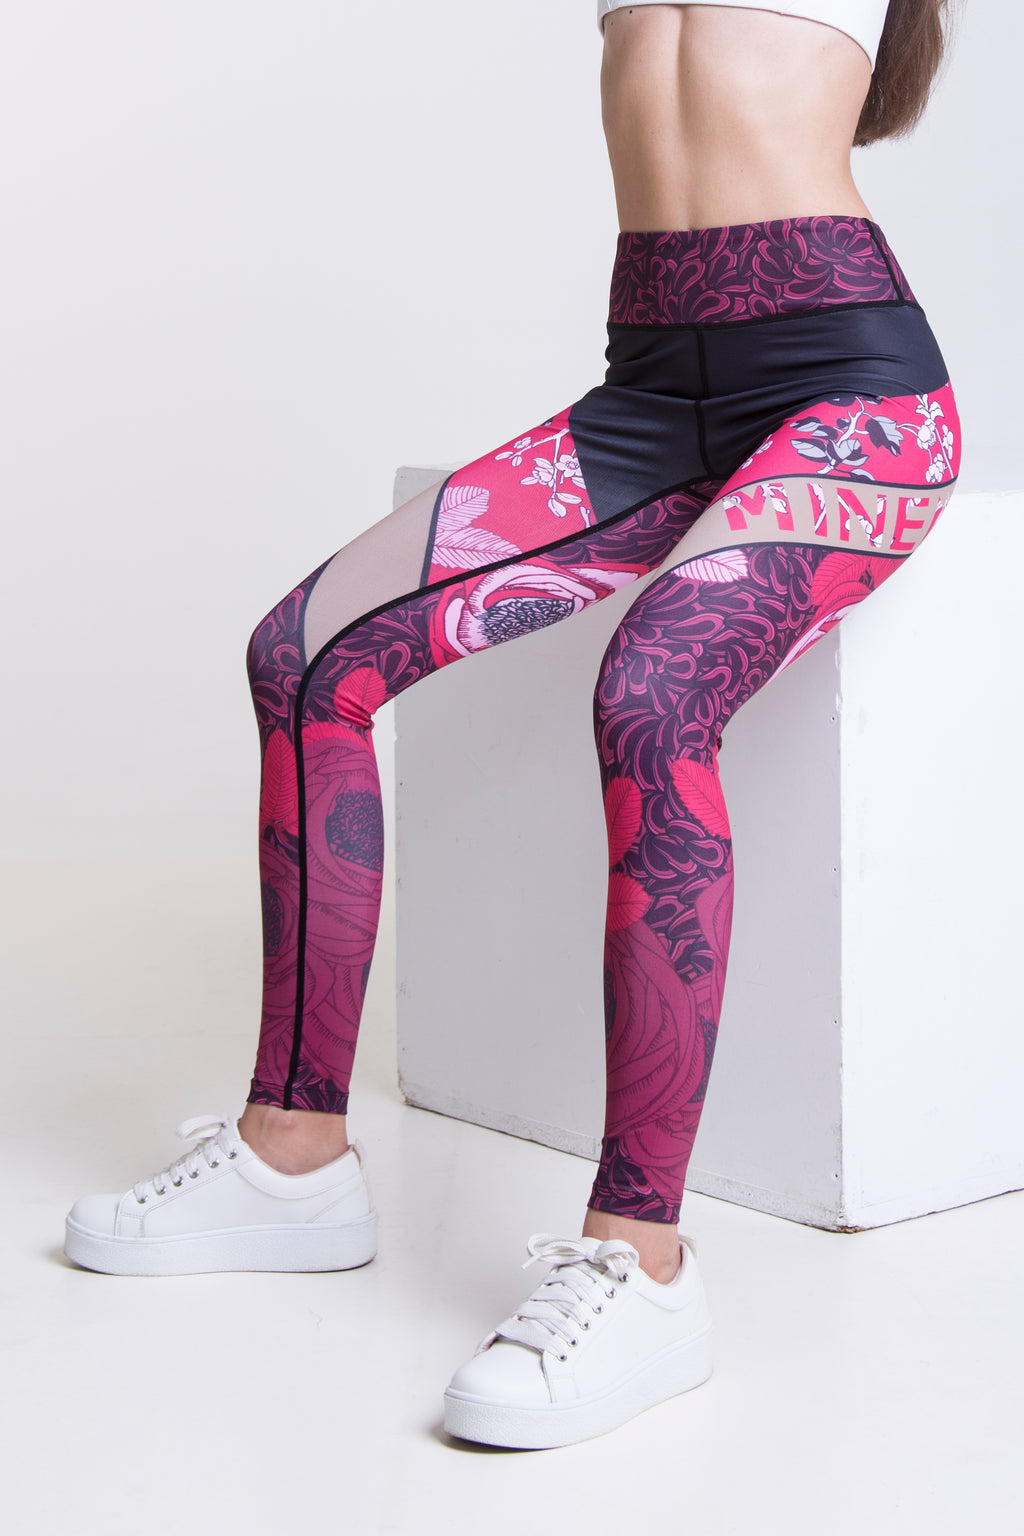 LYNNE Leggings női